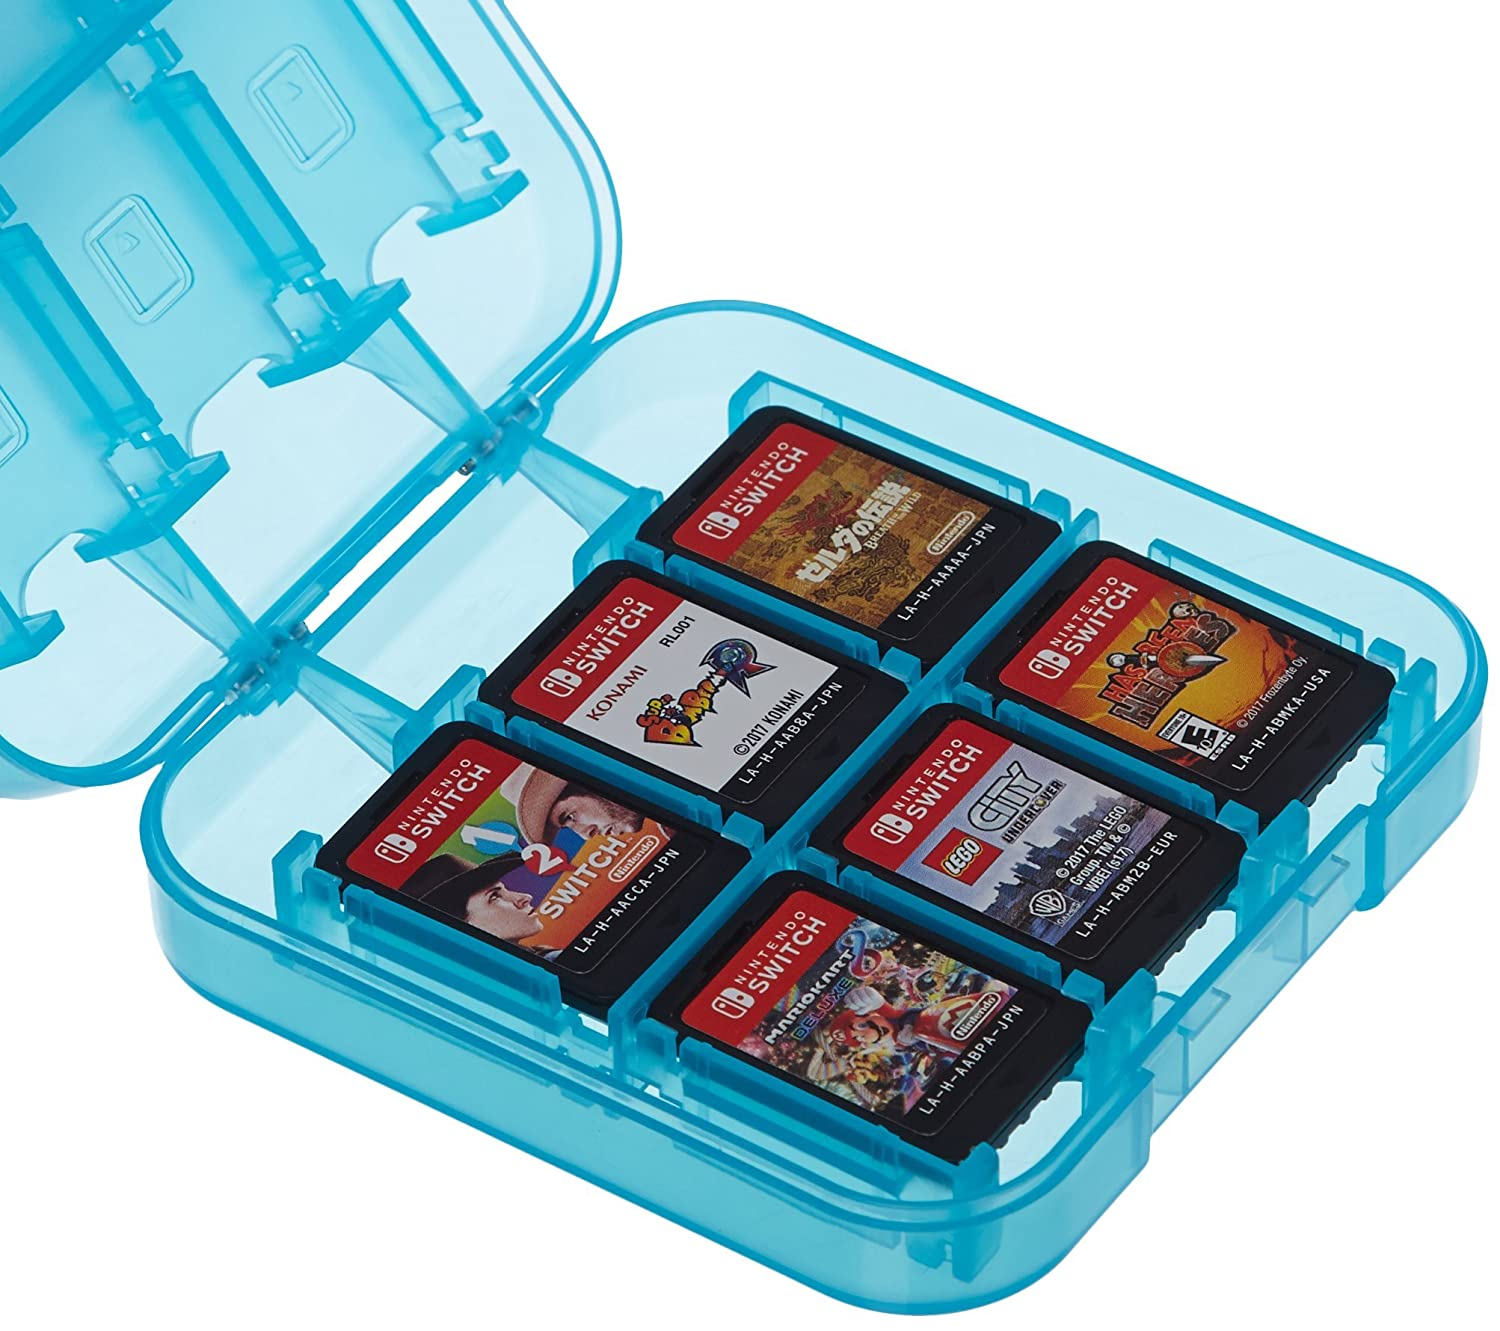 AmazonBasics Game Storage Case for 24 Nintendo Switch Games - 3.4 x 3.4 x 1 Inches, Blue